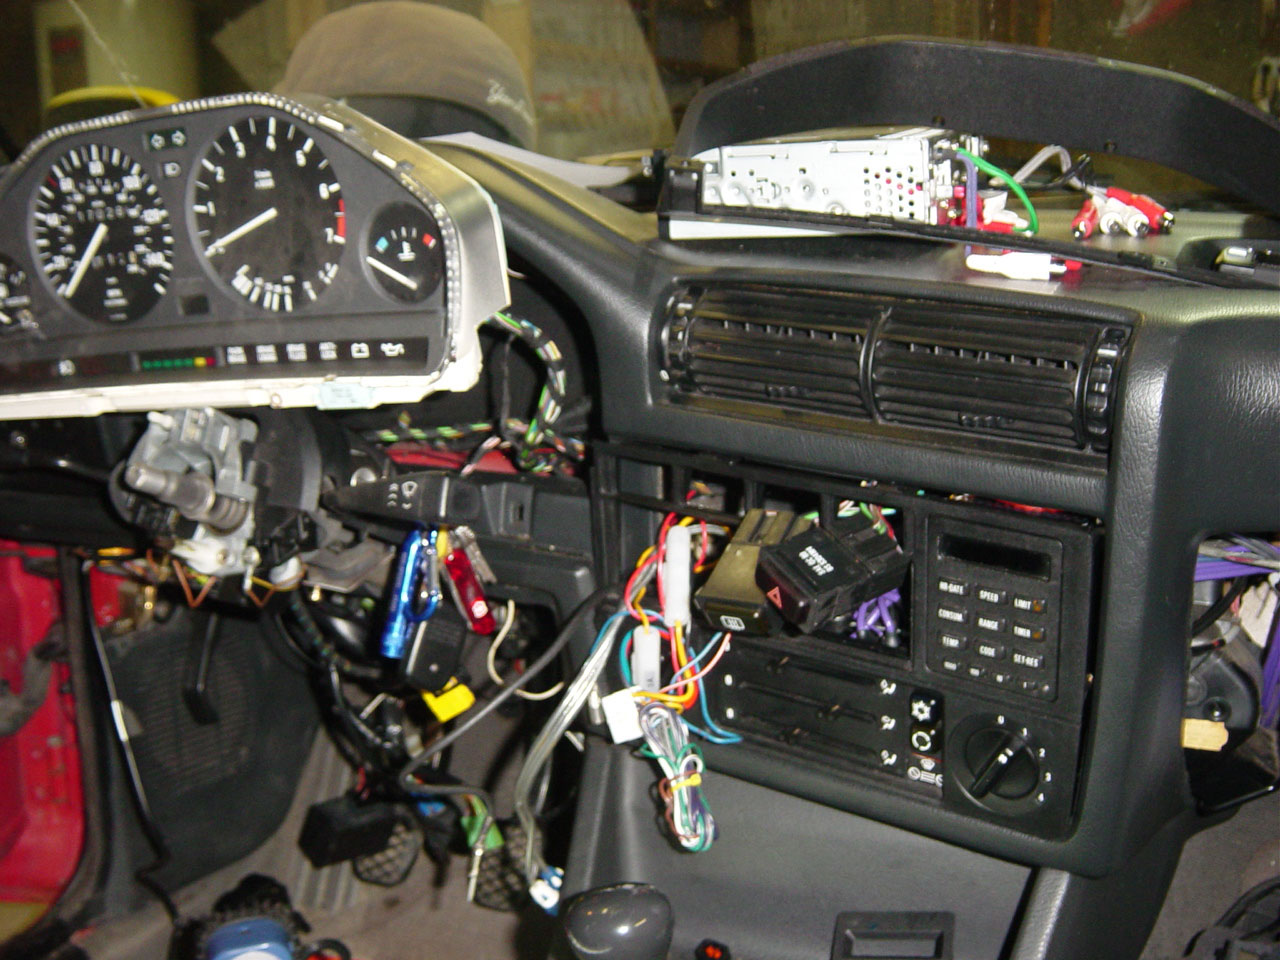 E30 318i Wiring Diagram Free Download For Bmw 1991 M42 On Board Computer Obc Retrofit By Michael System